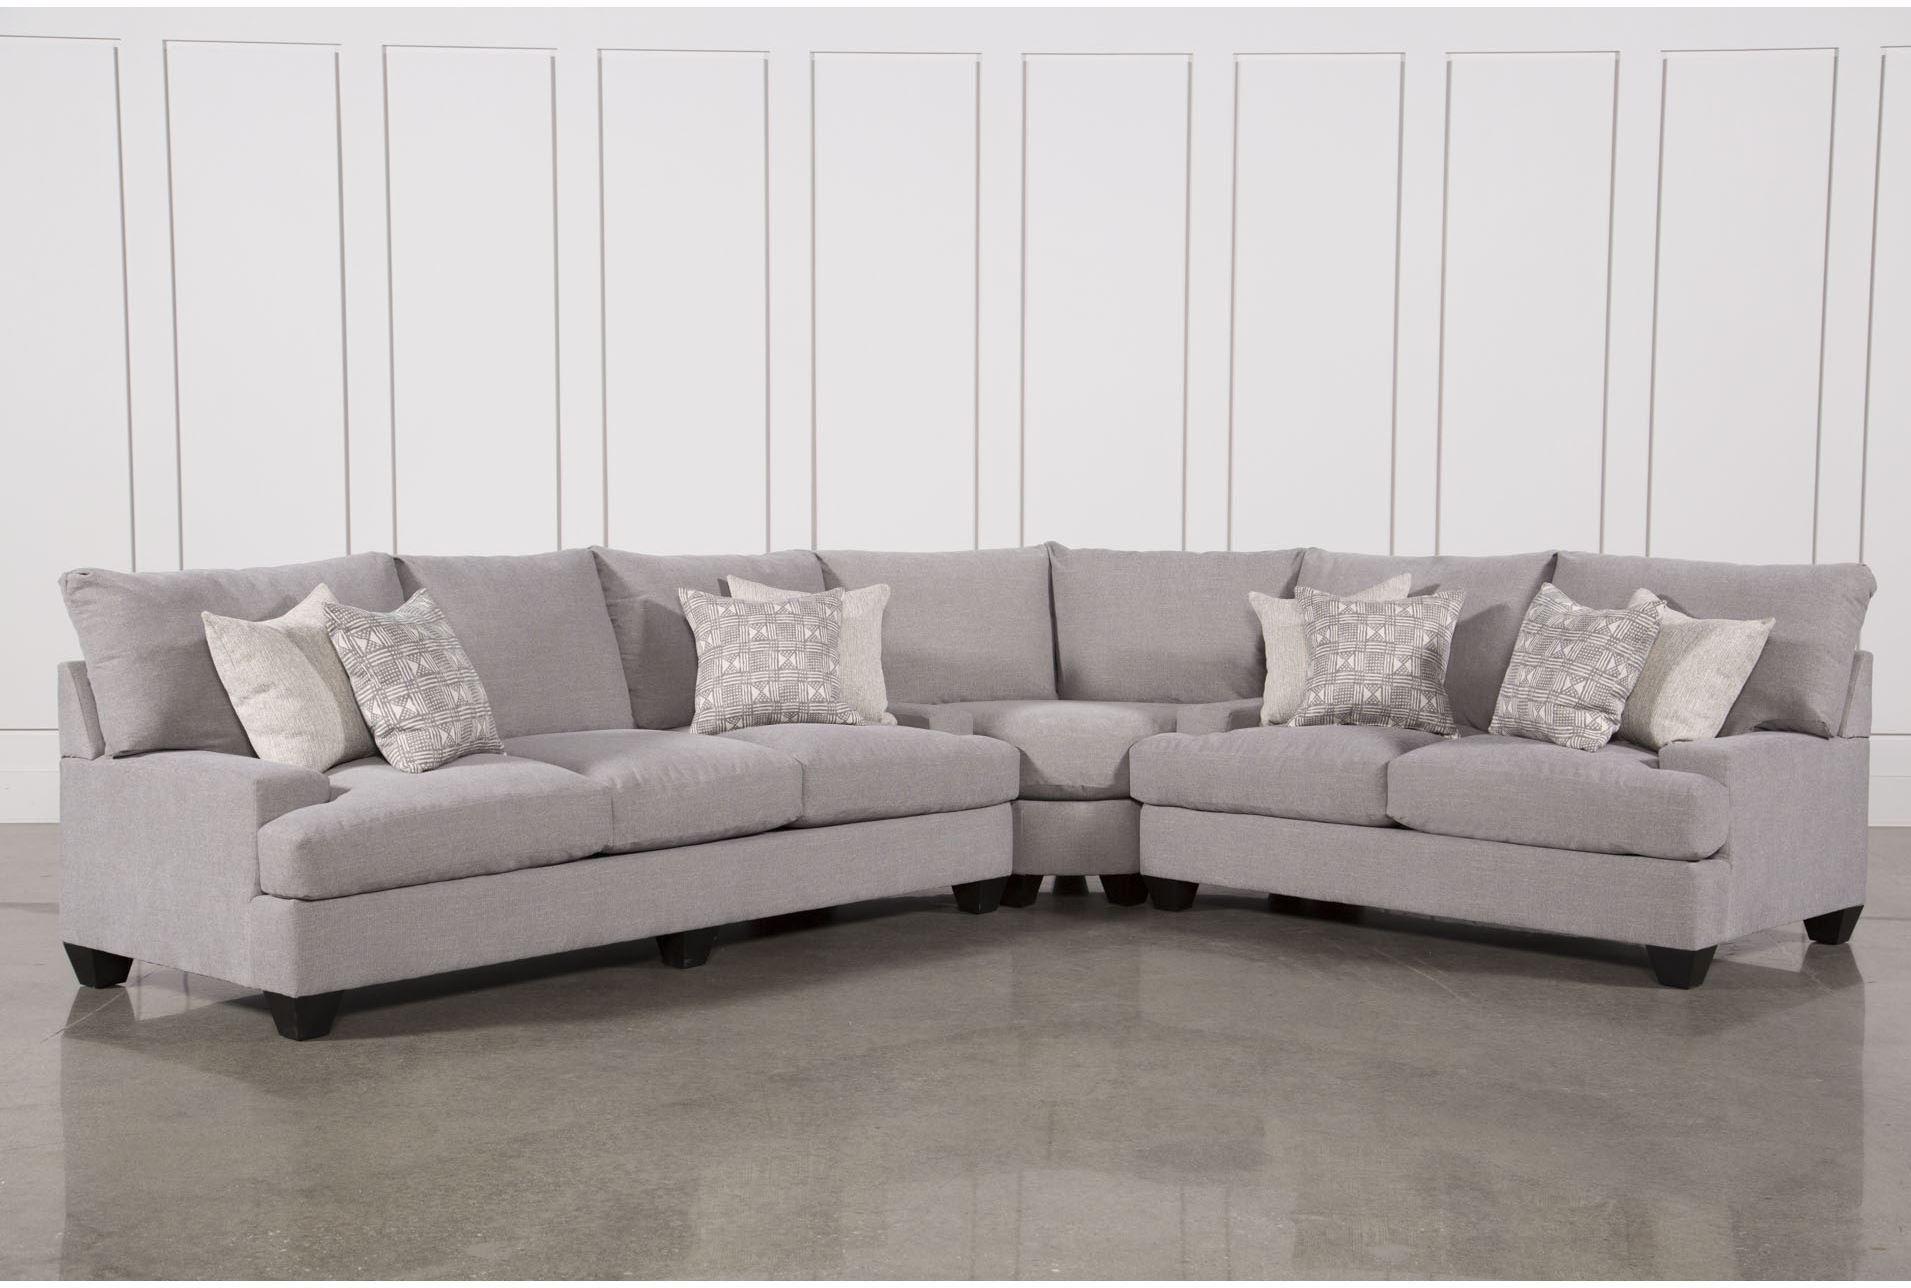 Harper Down 3 Piece Sectional | Sofas And Sectionals | Pinterest | 3 With Regard To Sierra Down 3 Piece Sectionals With Laf Chaise (Image 13 of 25)